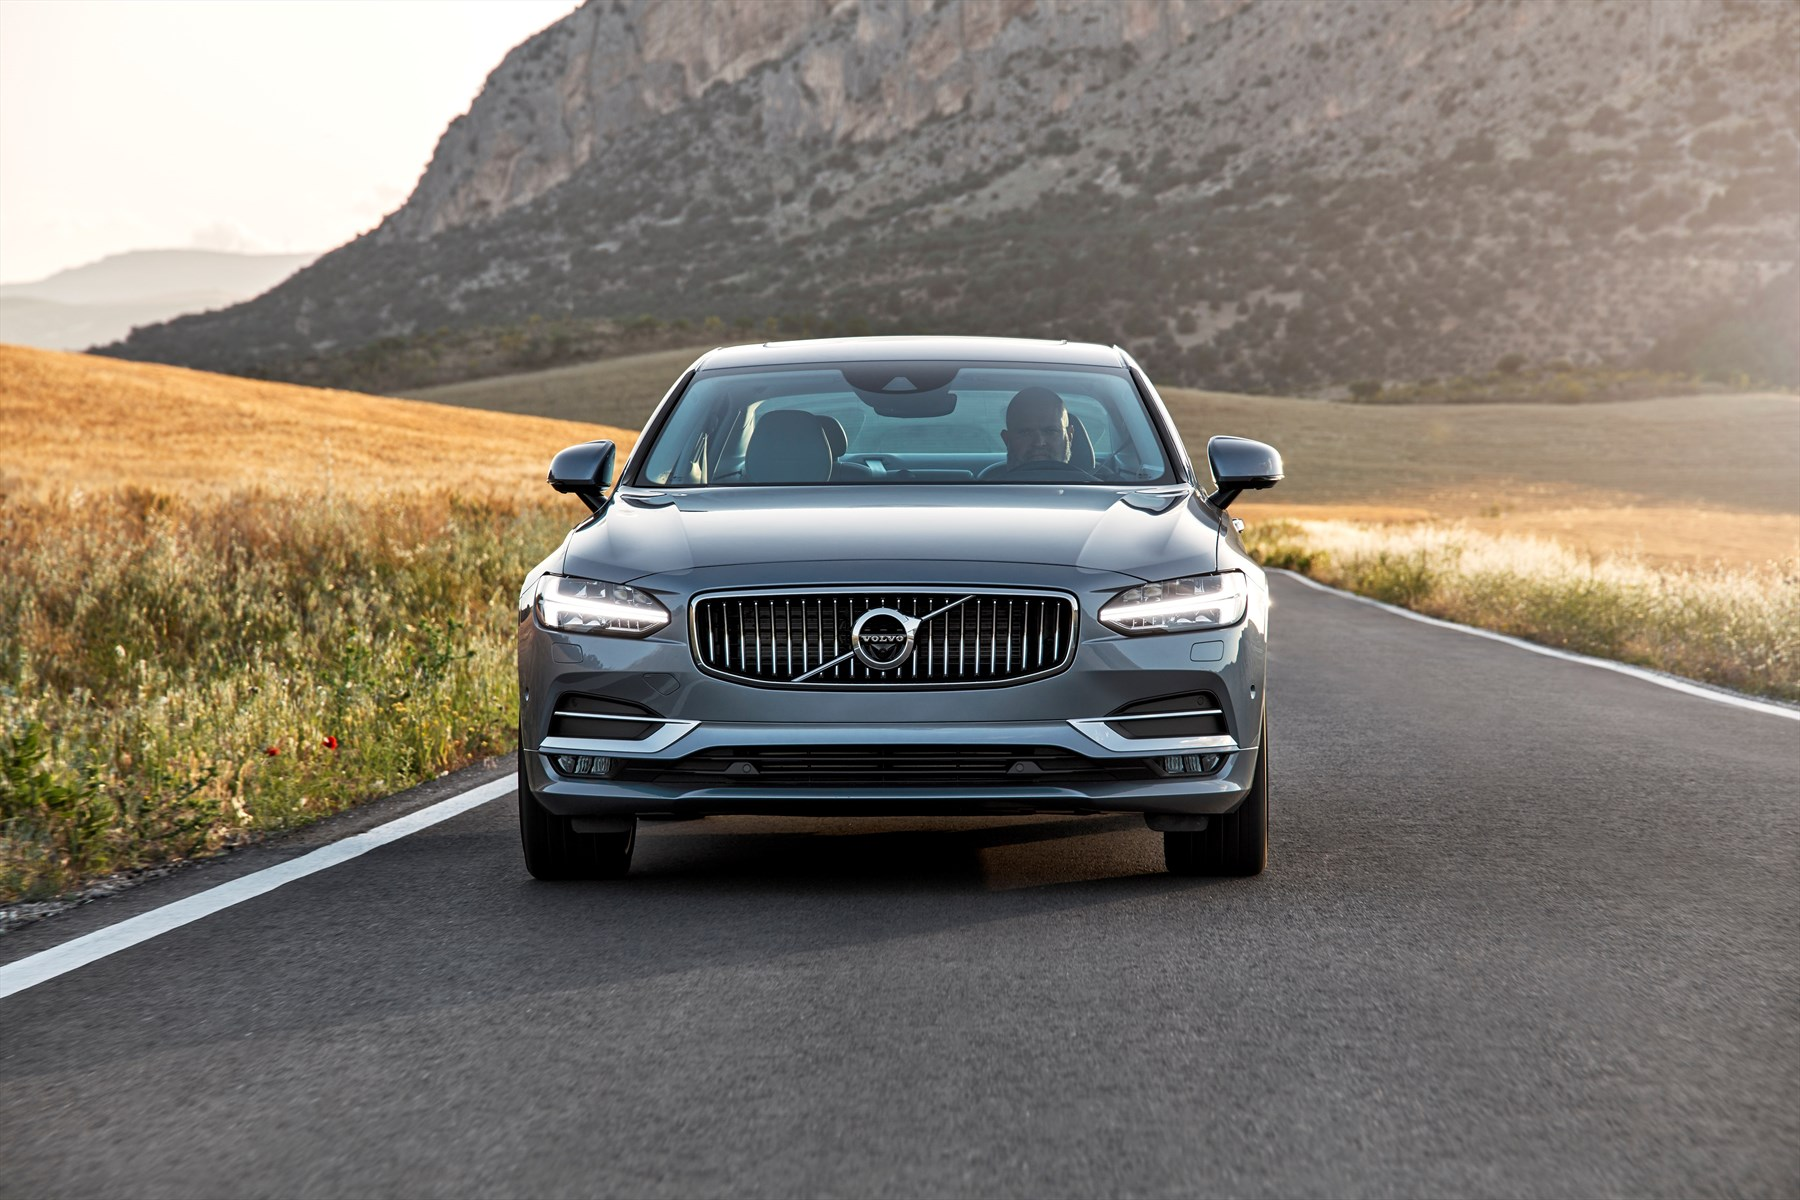 191750-new-volvo-s90-location-driving_1800x1800